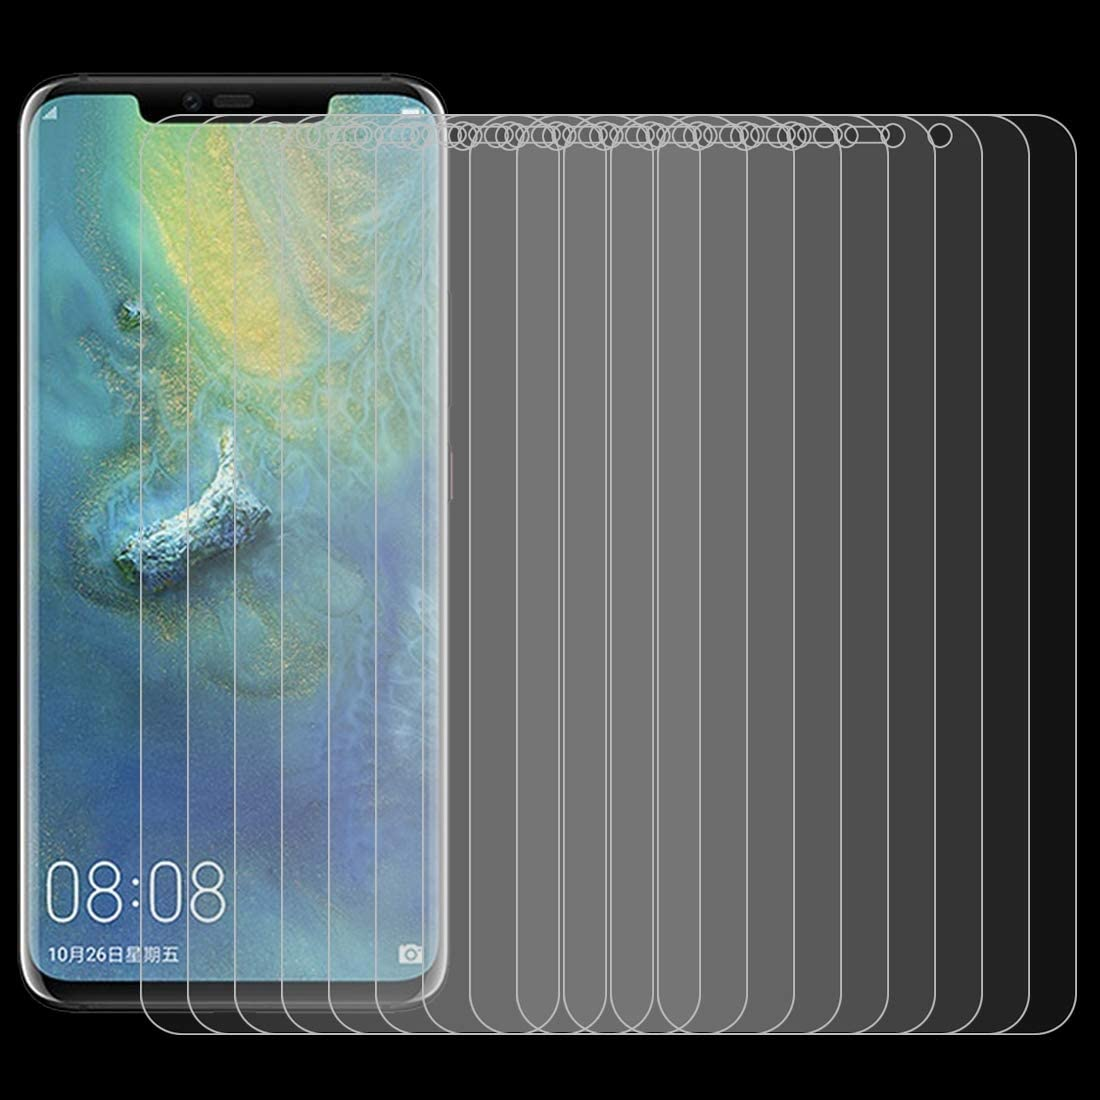 ALICEWU WJH 0.26mm 9H Surface Hardness 2.5D Curved Edge Tempered Glass Film for Huawei Mate 20 Pro